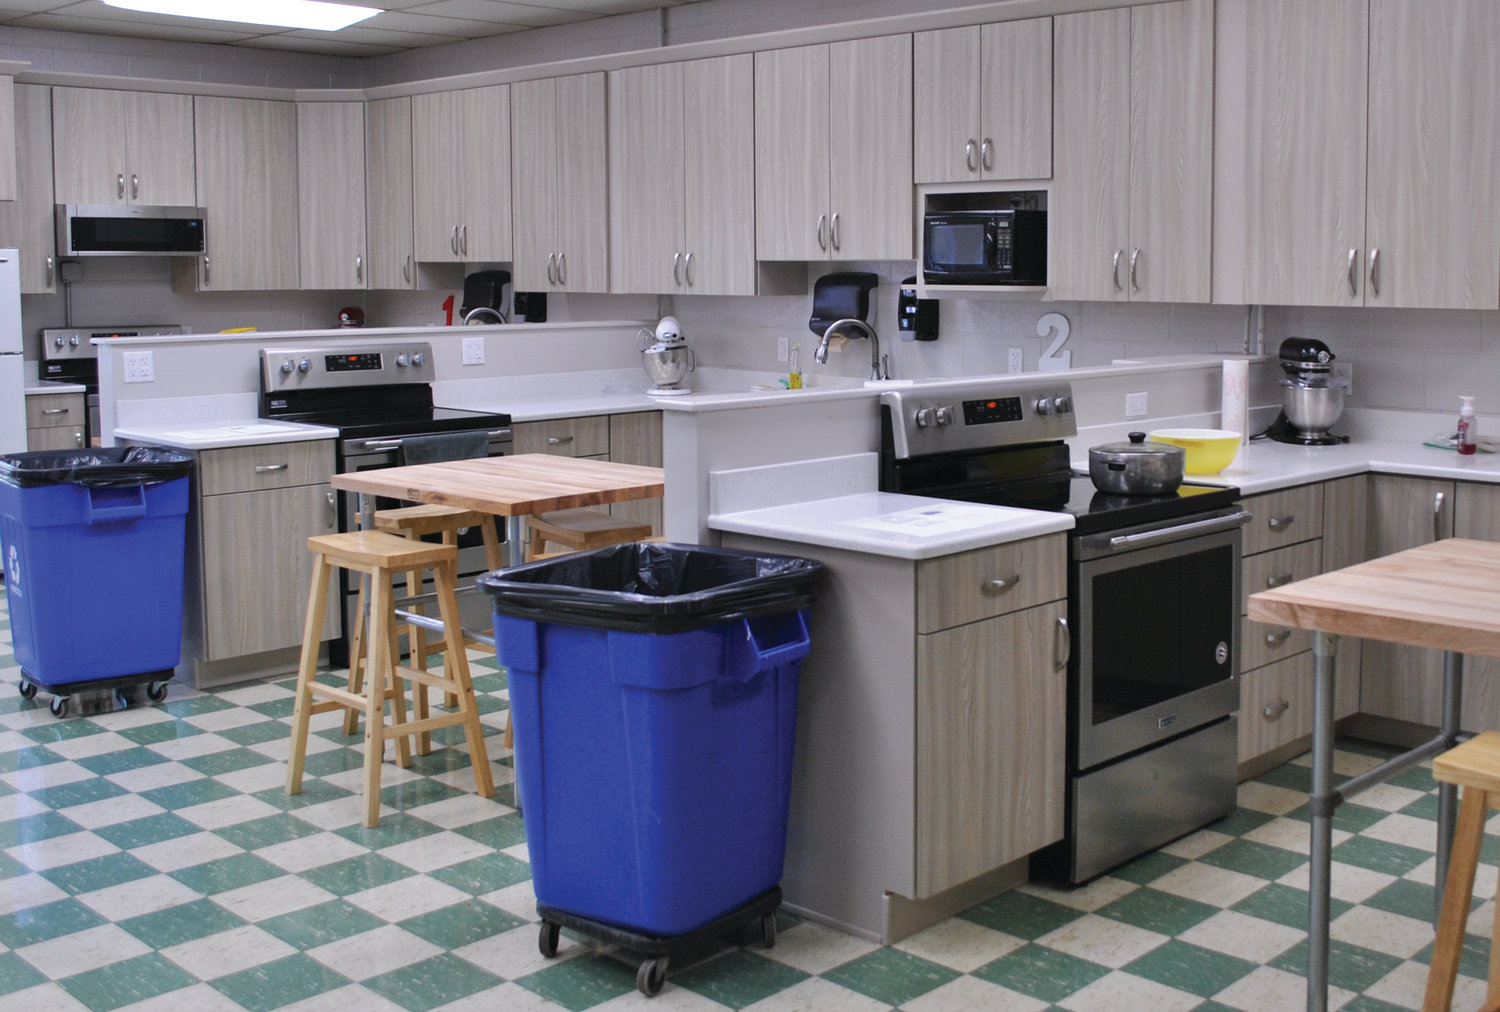 Shiloh High School's revamped Family and Consumer Sciences classroom is equipped with new cabinetry, quality appliances and sturdy tables thanks to the 1 percent facilities tax and an $1,800 grant from the ECCF. Students and school organizations have already made use of the new cooking space.